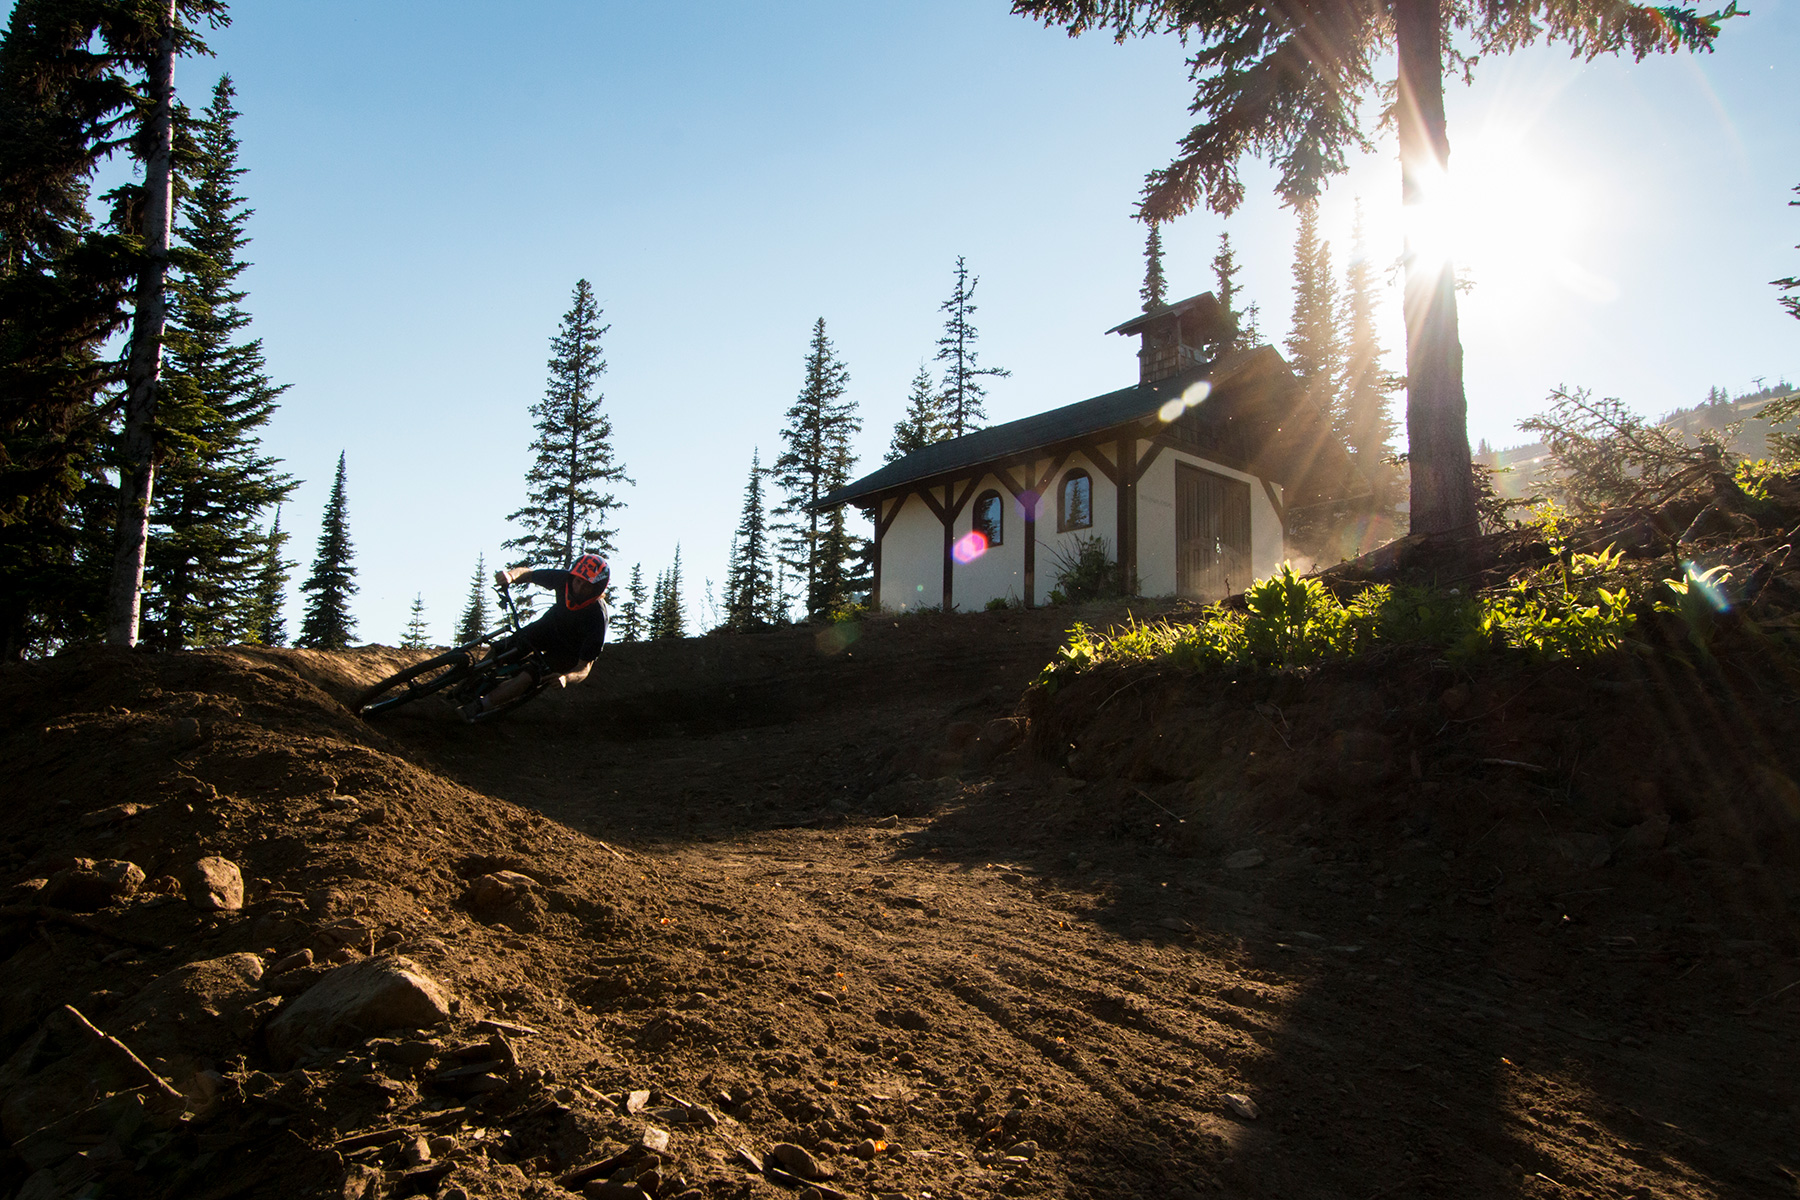 Rider on Route 66 at Sun Peaks Bike Park during sunset.